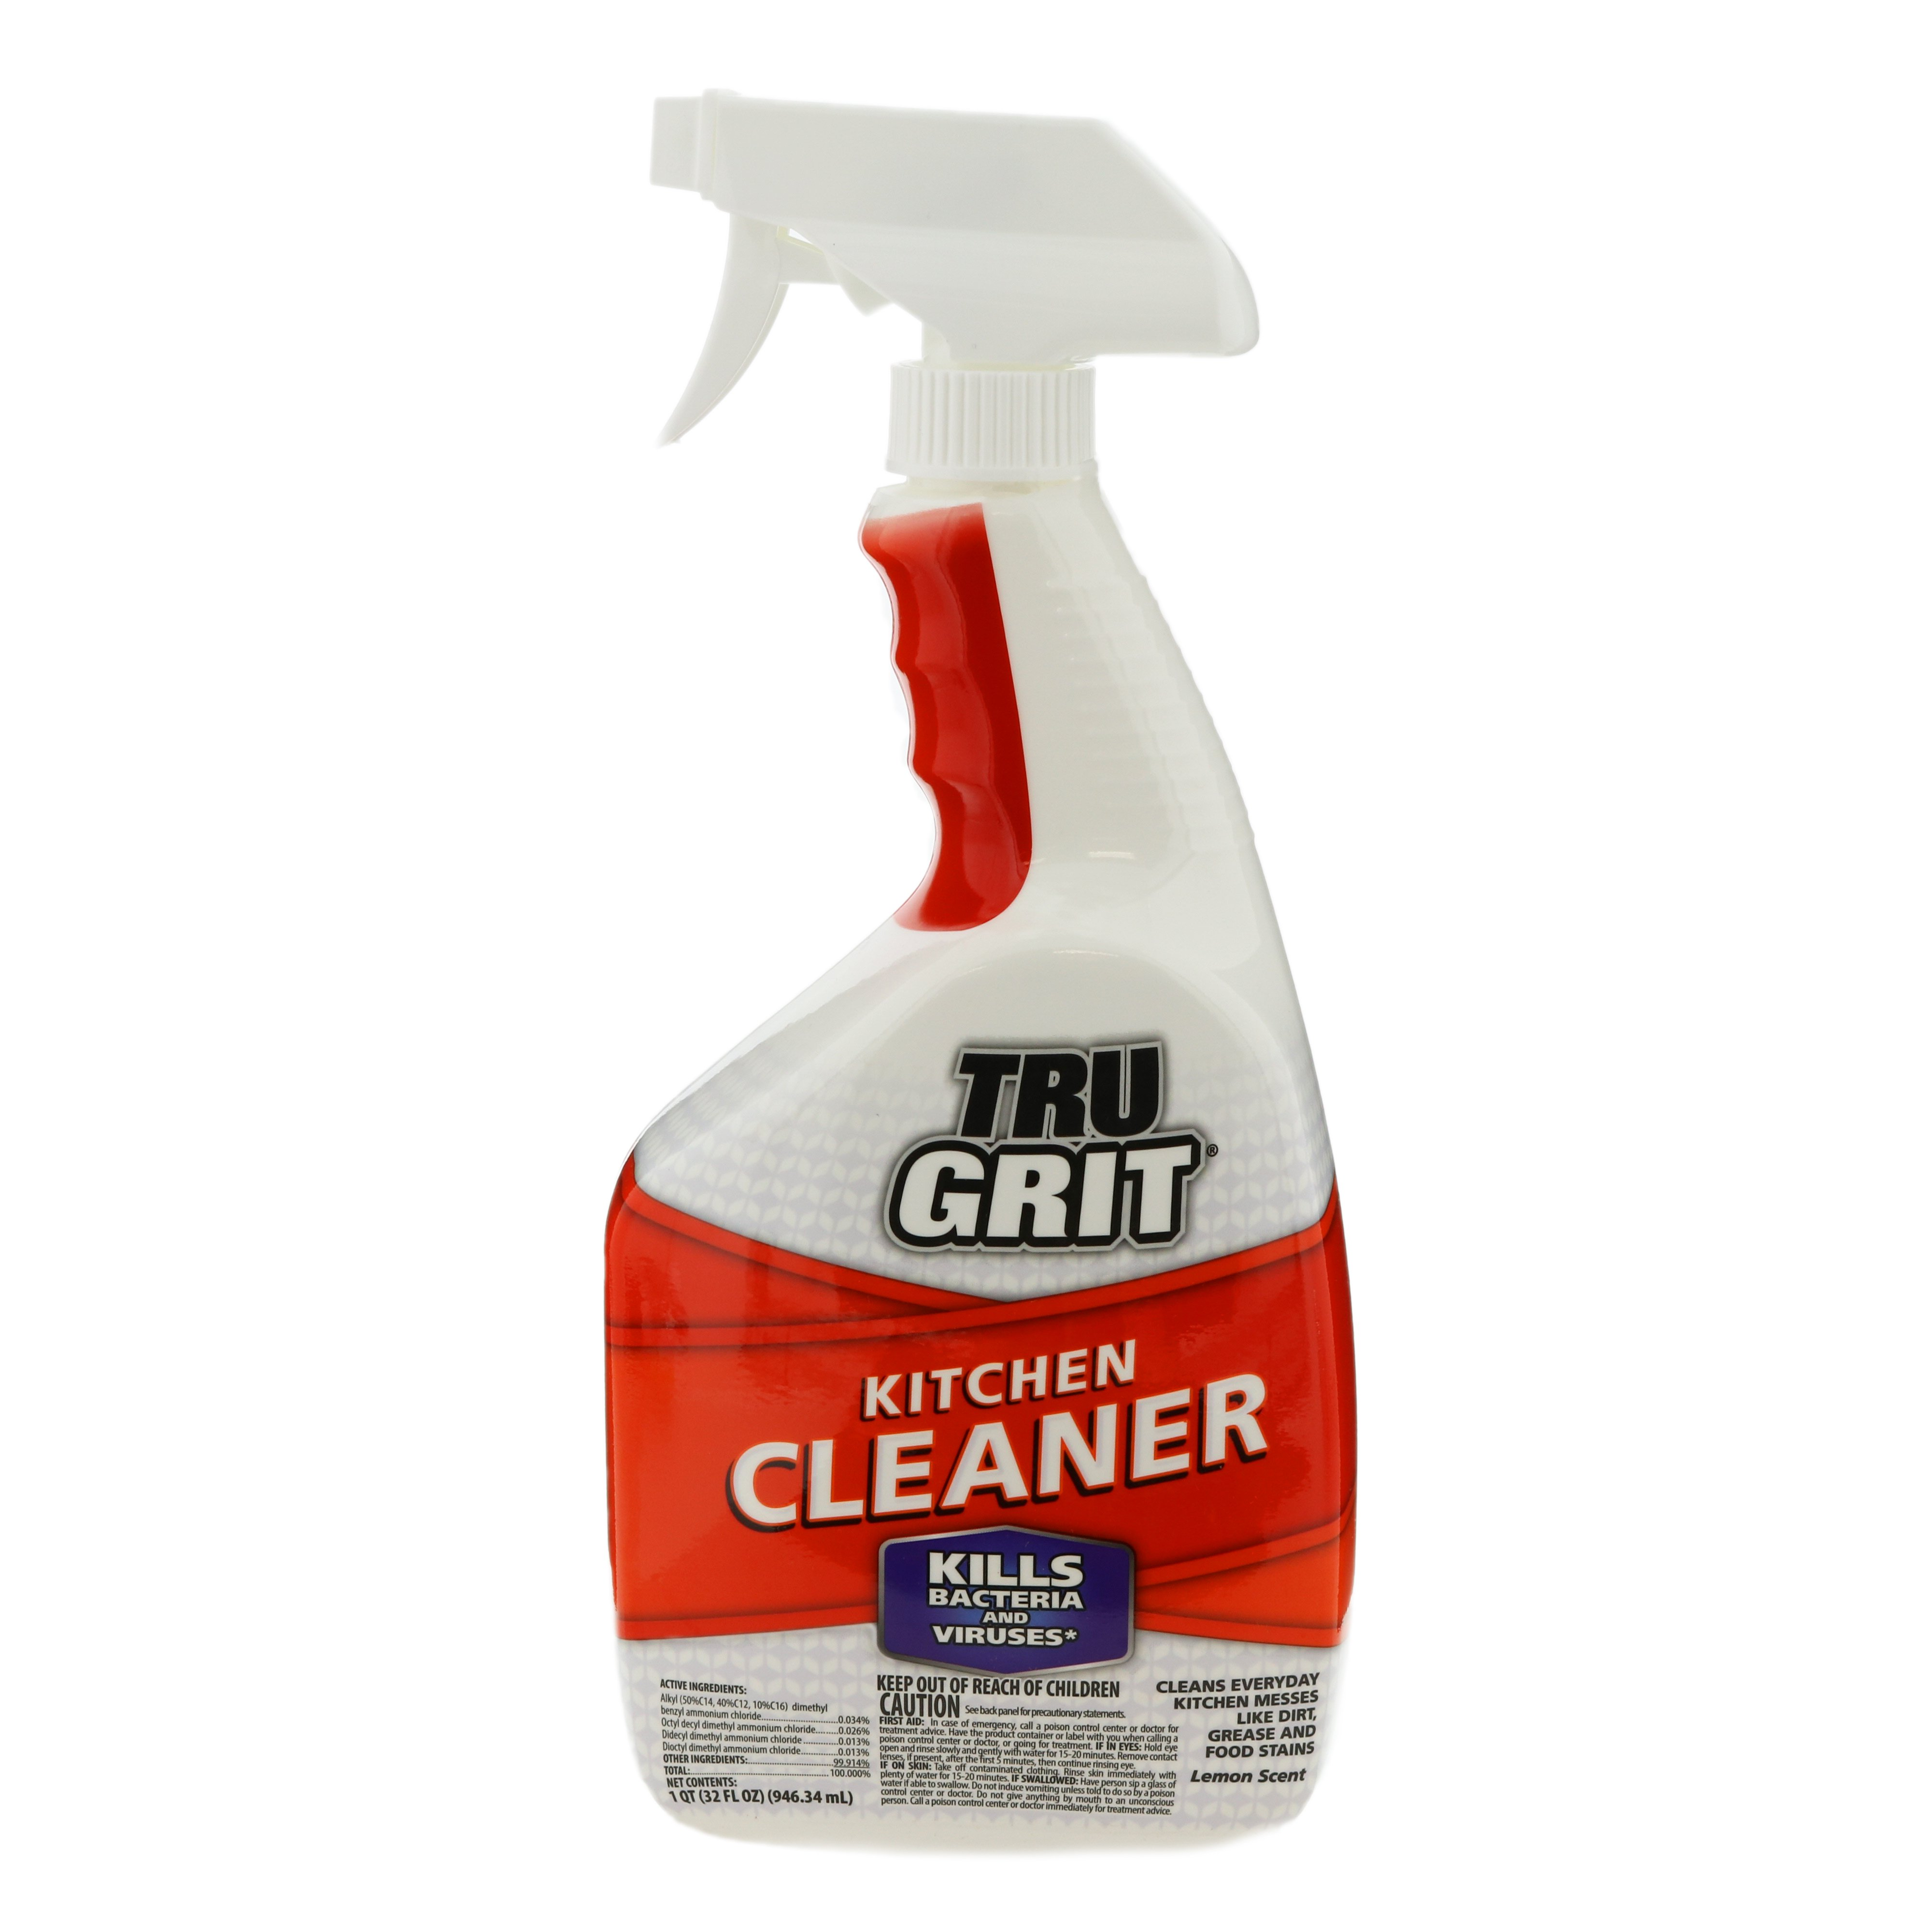 Tru Grit Kitchen Cleaner   Shop All Purpose At HEB